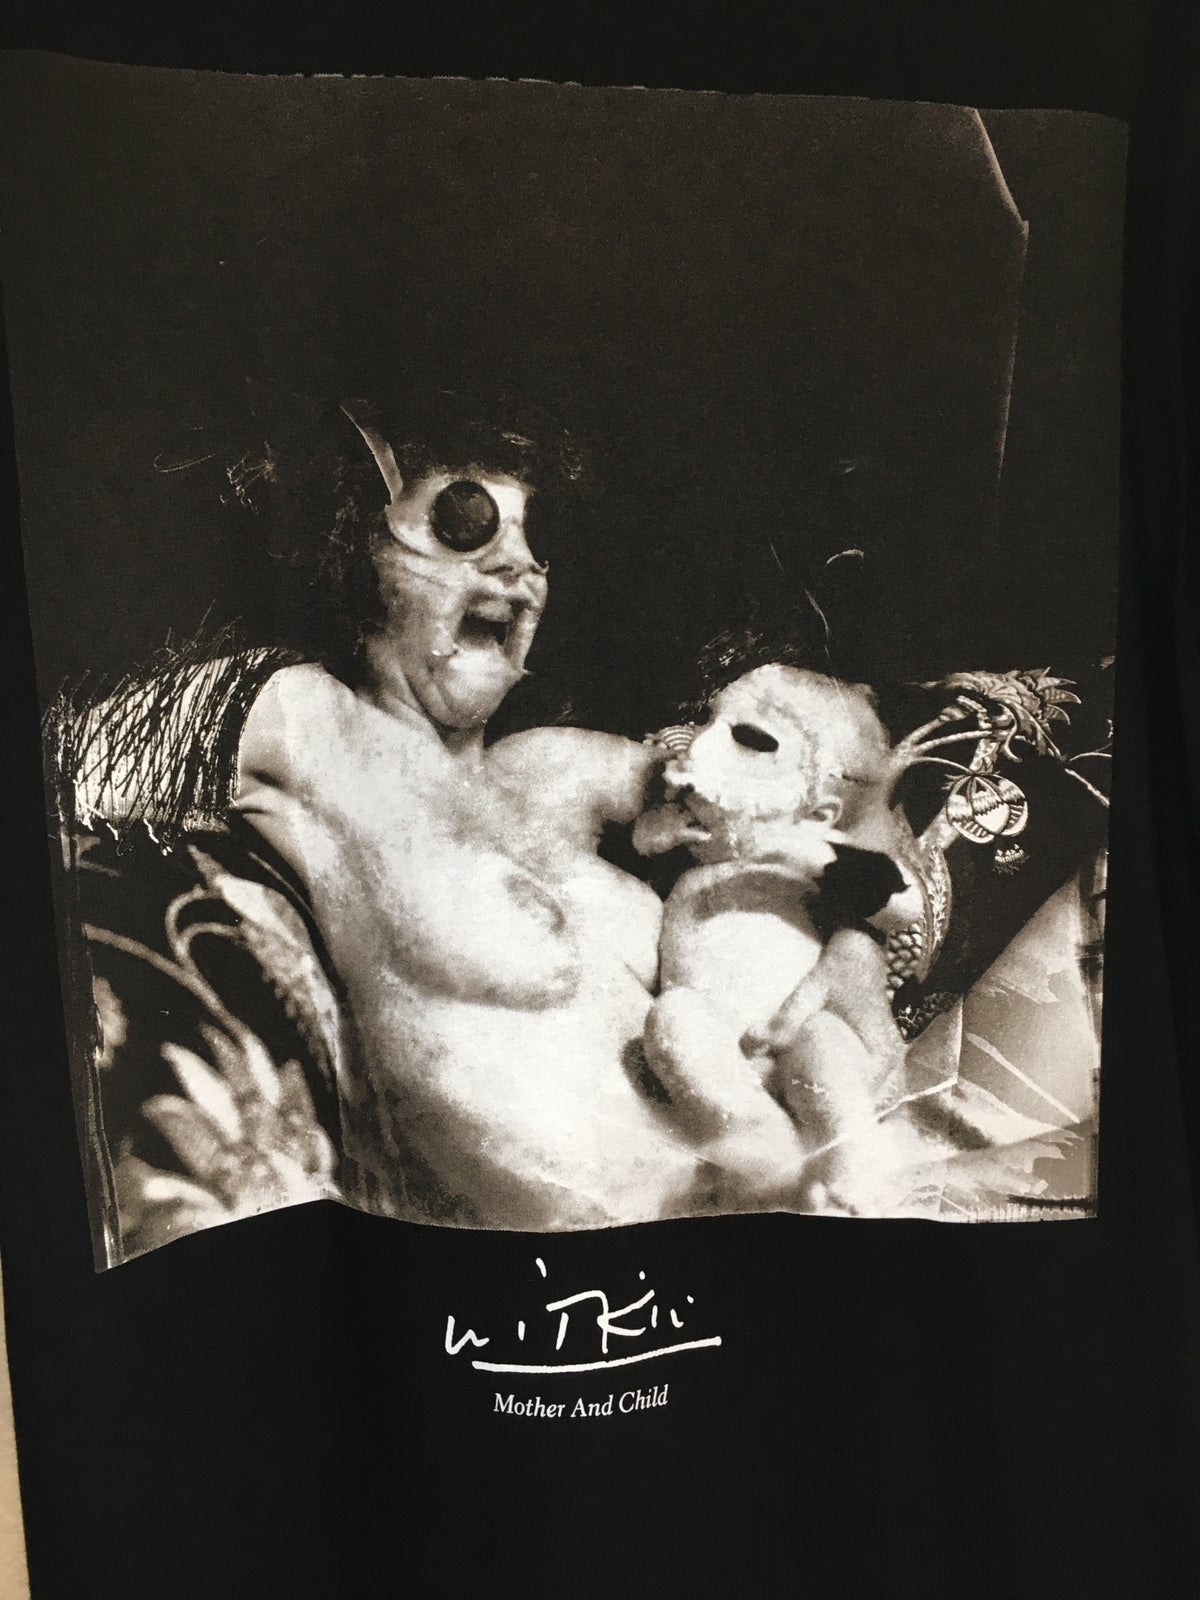 Supreme x Joel-Peters Witkin Mother And Child Tee